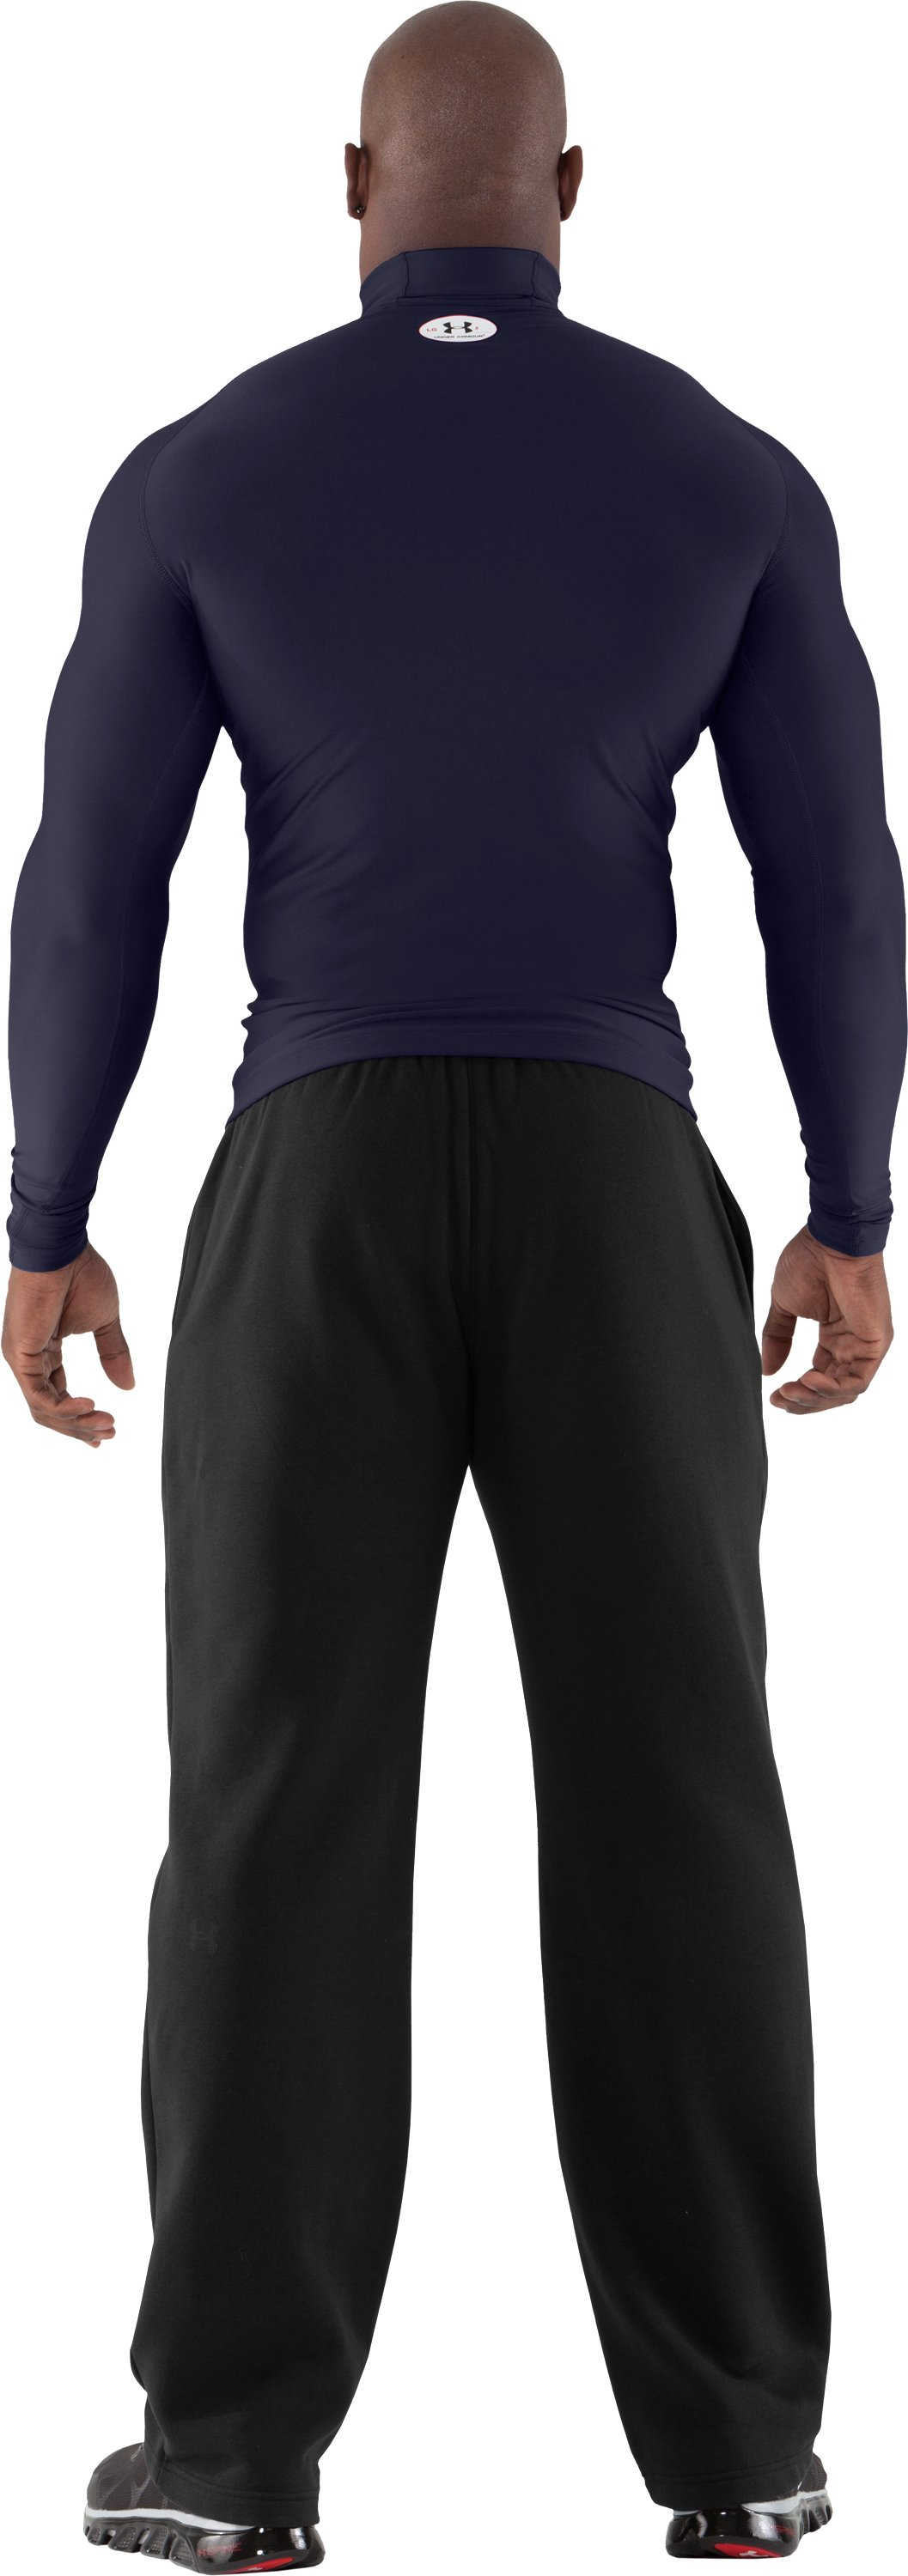 Men's ColdGear® Evo Long Sleeve Compression Mock, Midnight Navy, Back